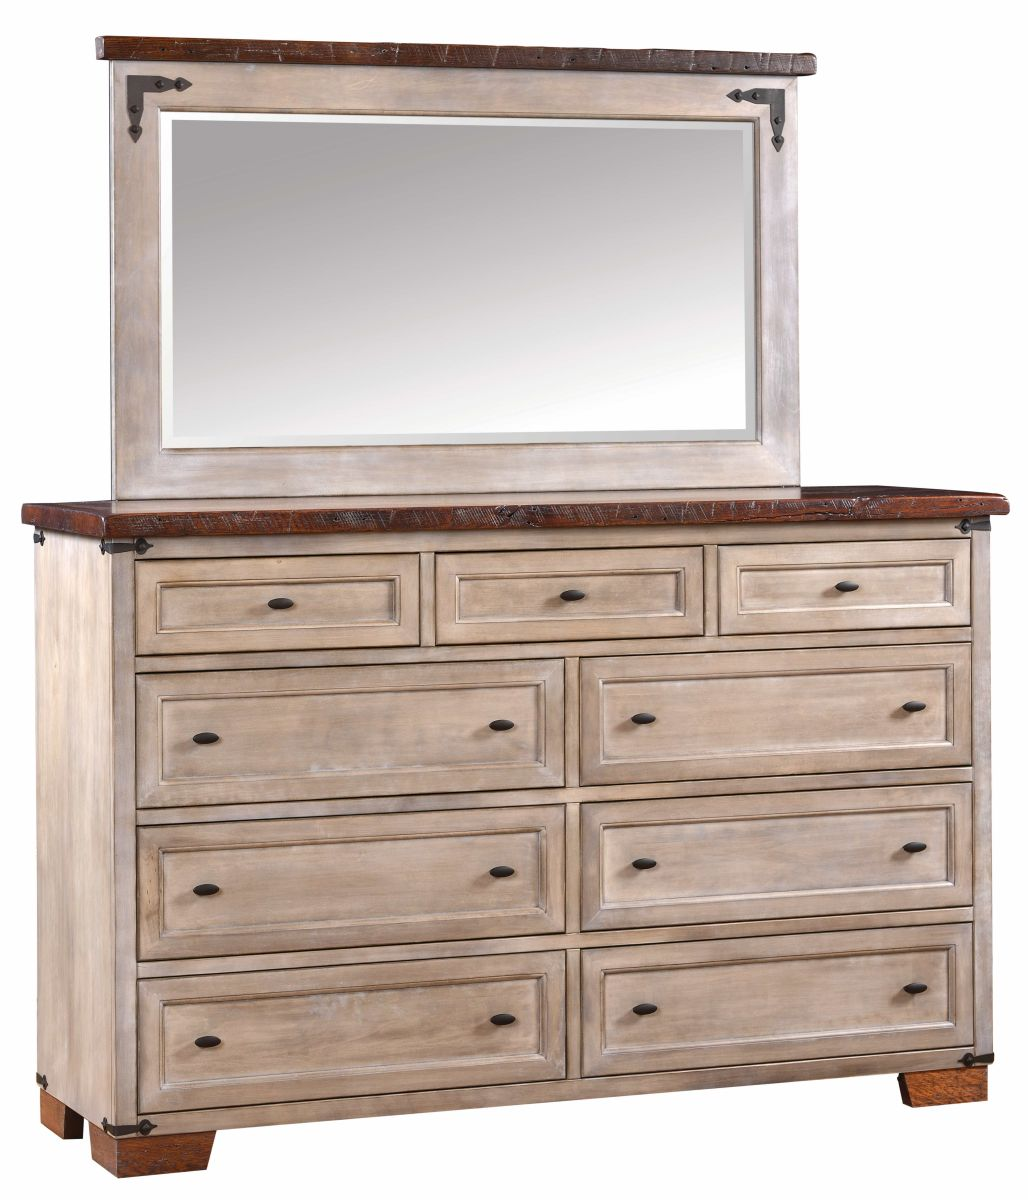 Farmhouse Heritage Dresser